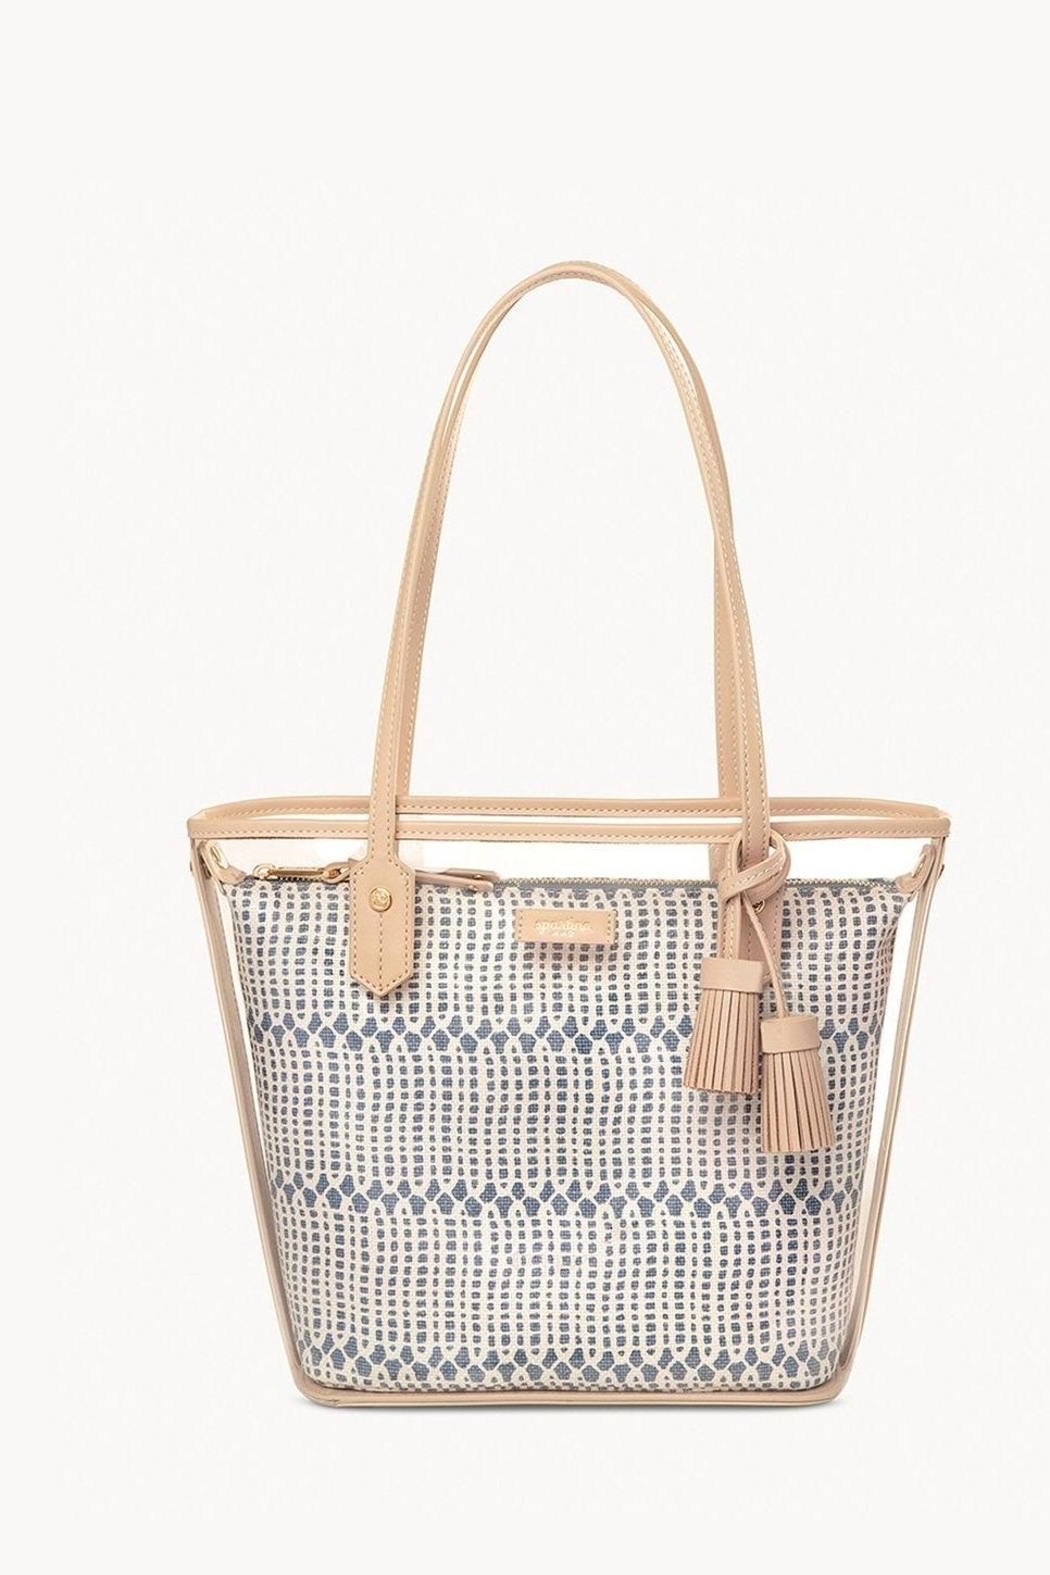 Spartina 449 Songbird Clear Tote - Main Image